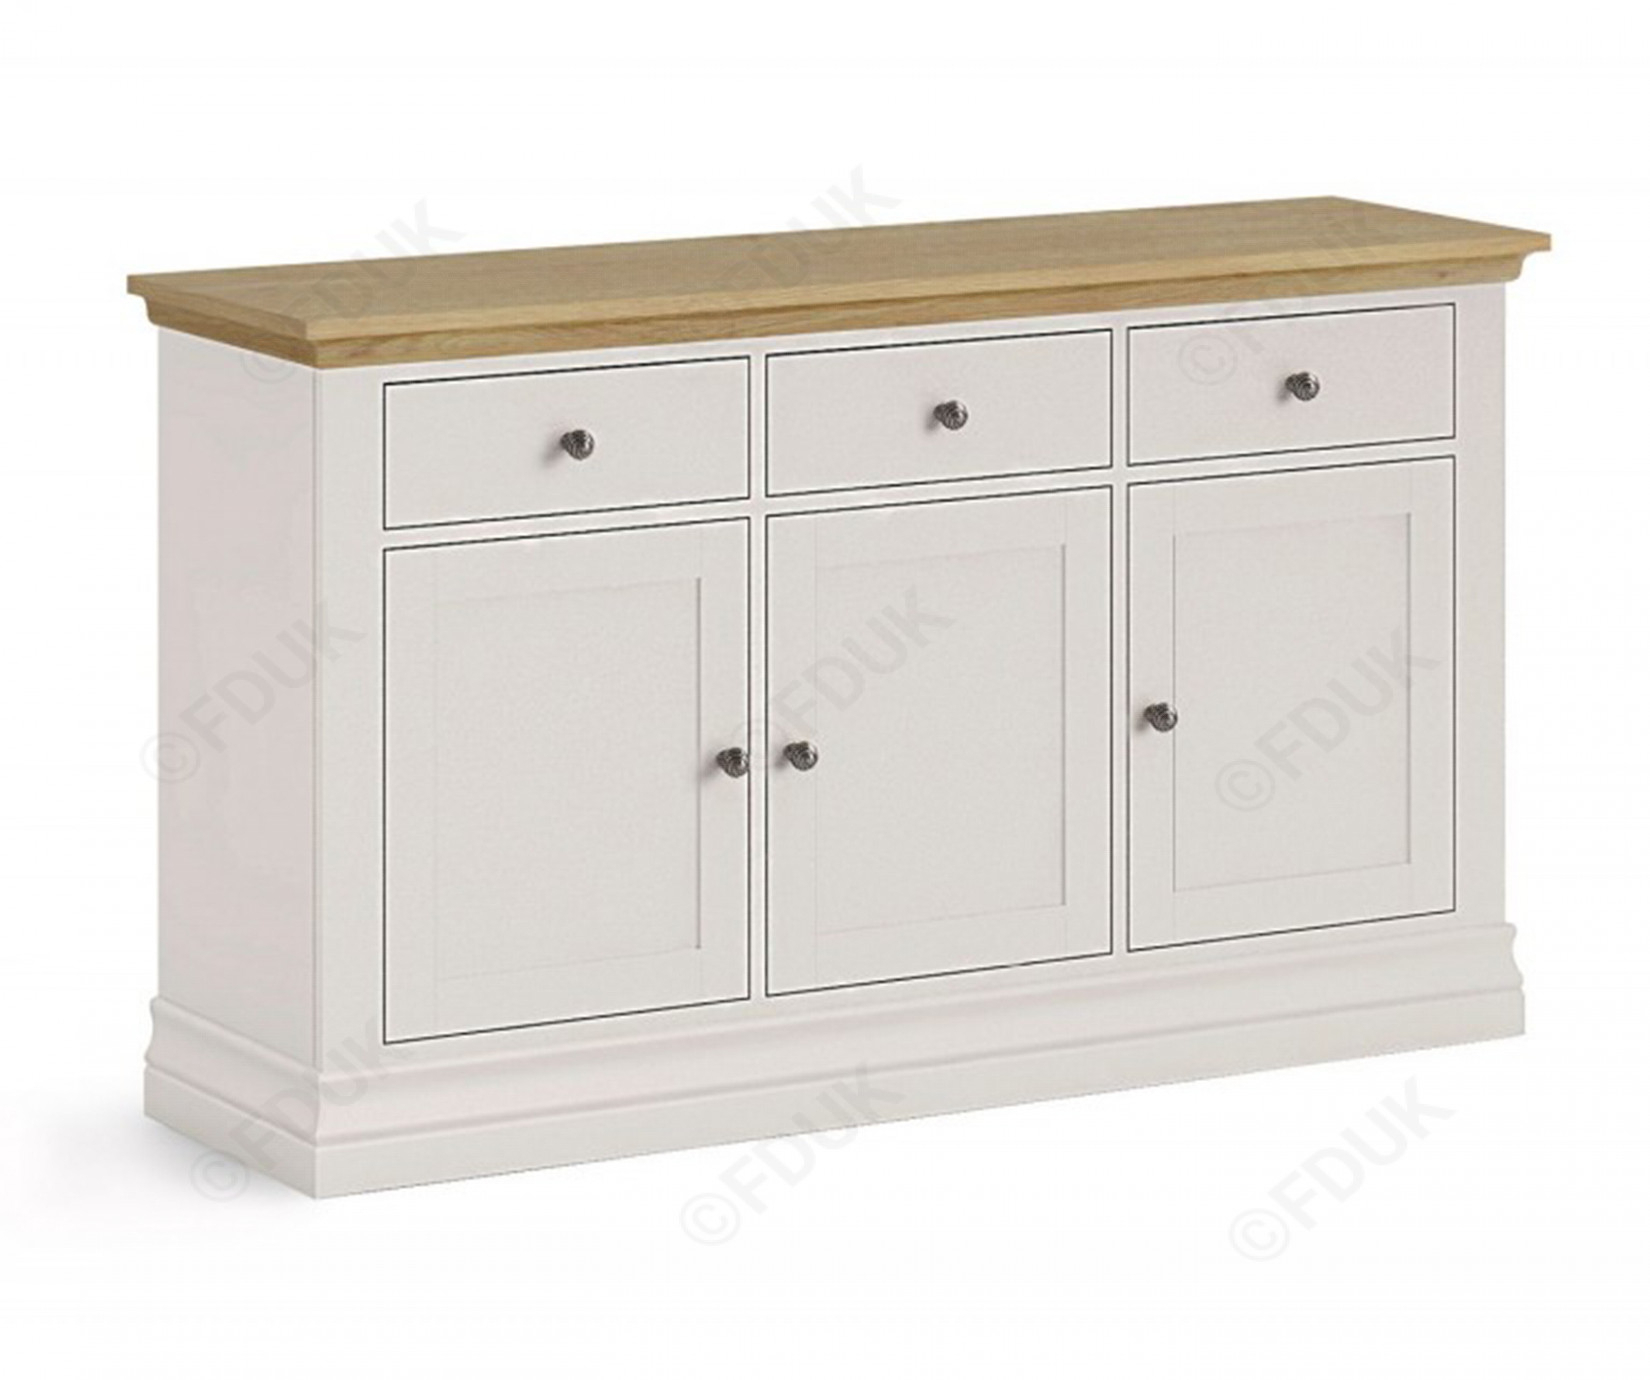 Corndell Annecy Large Sideboard Fduk Best Price Guarantee We Will Beat Our  Competitors Price! Give Our Sales Team A Call On 0116 235 77 86 And We Will for Annecy Sideboards (Image 15 of 30)